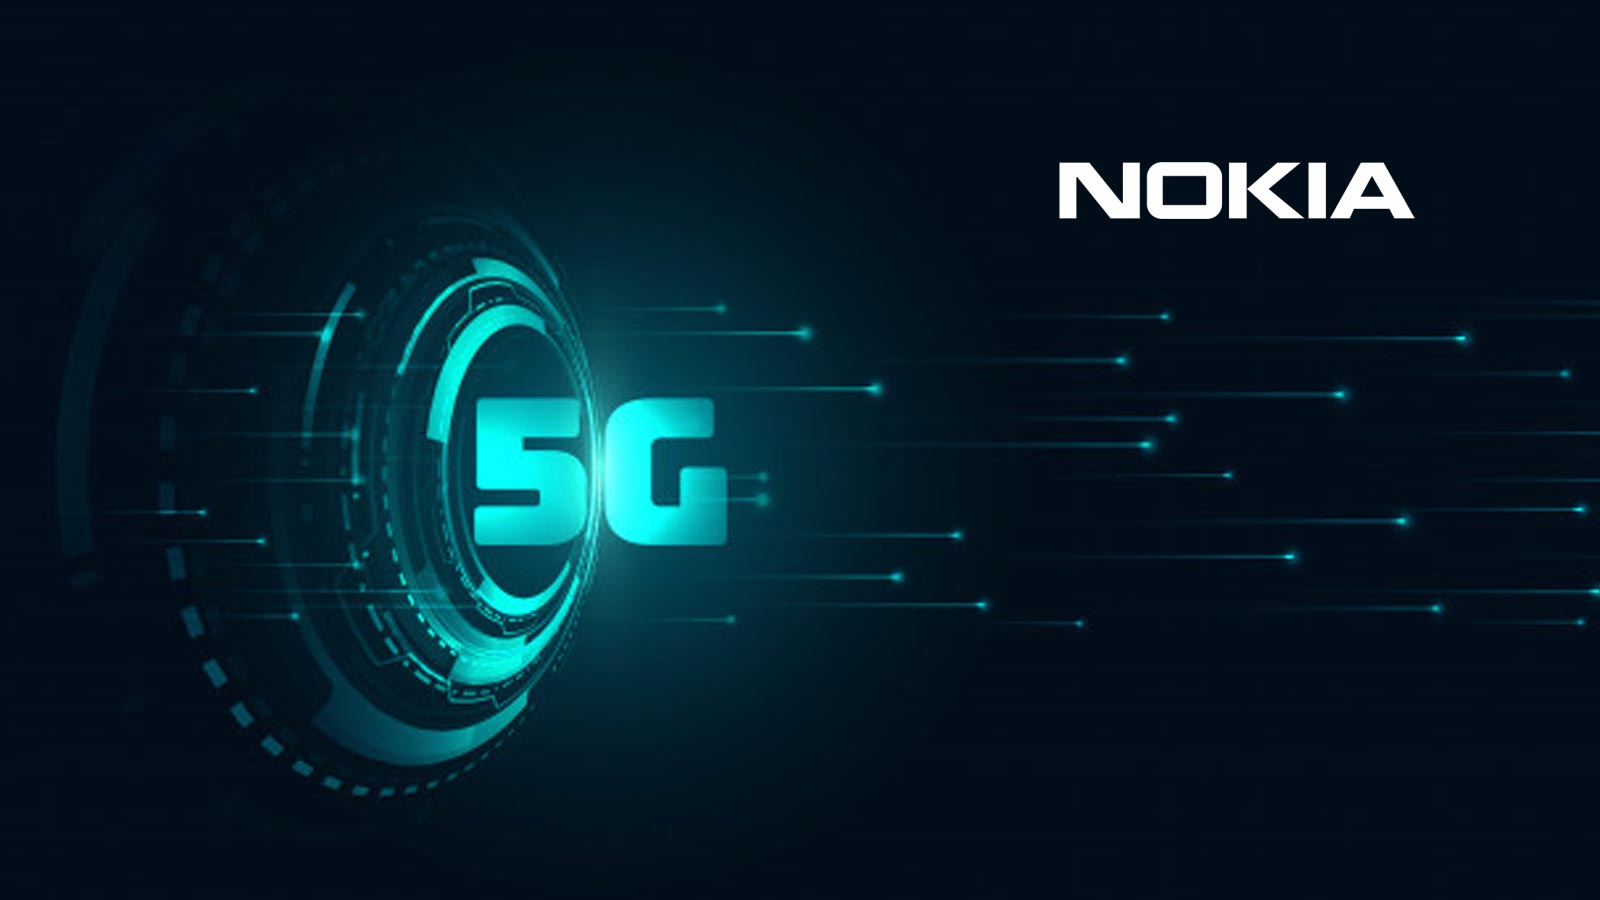 Nokia and M1 partner with 5G standalone Core to drive Singapore's 5G ecosystem 13